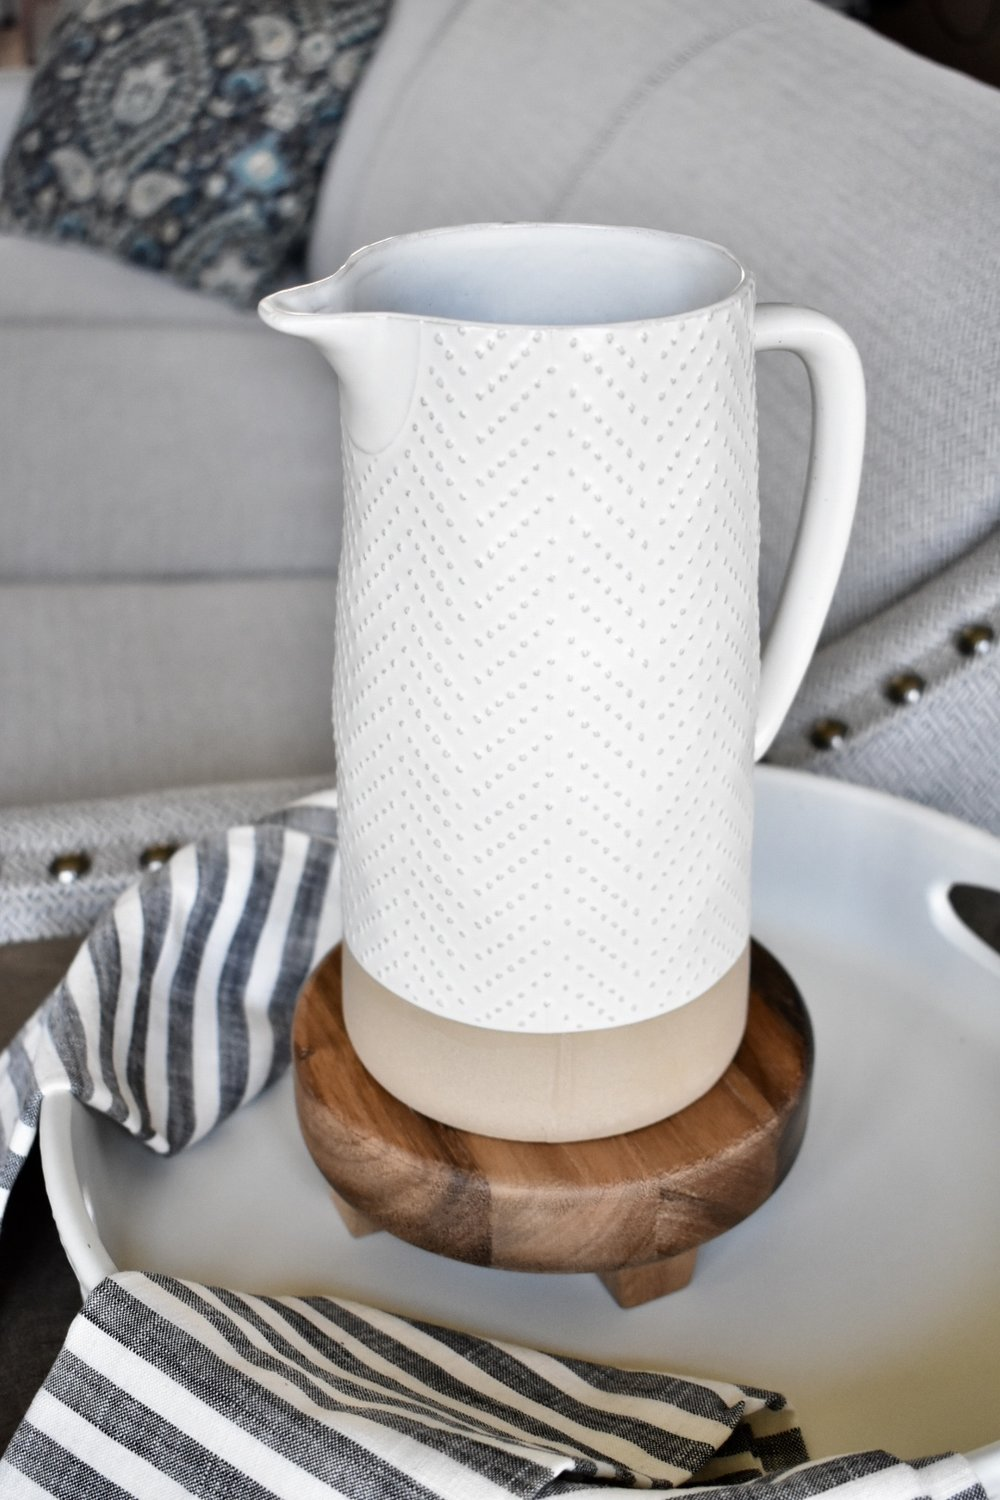 On The Paige Blog | Styling Hearth & Hand with Magnolia | Stoneware Pitcher | Rustic Modern Farmhouse Kitchen